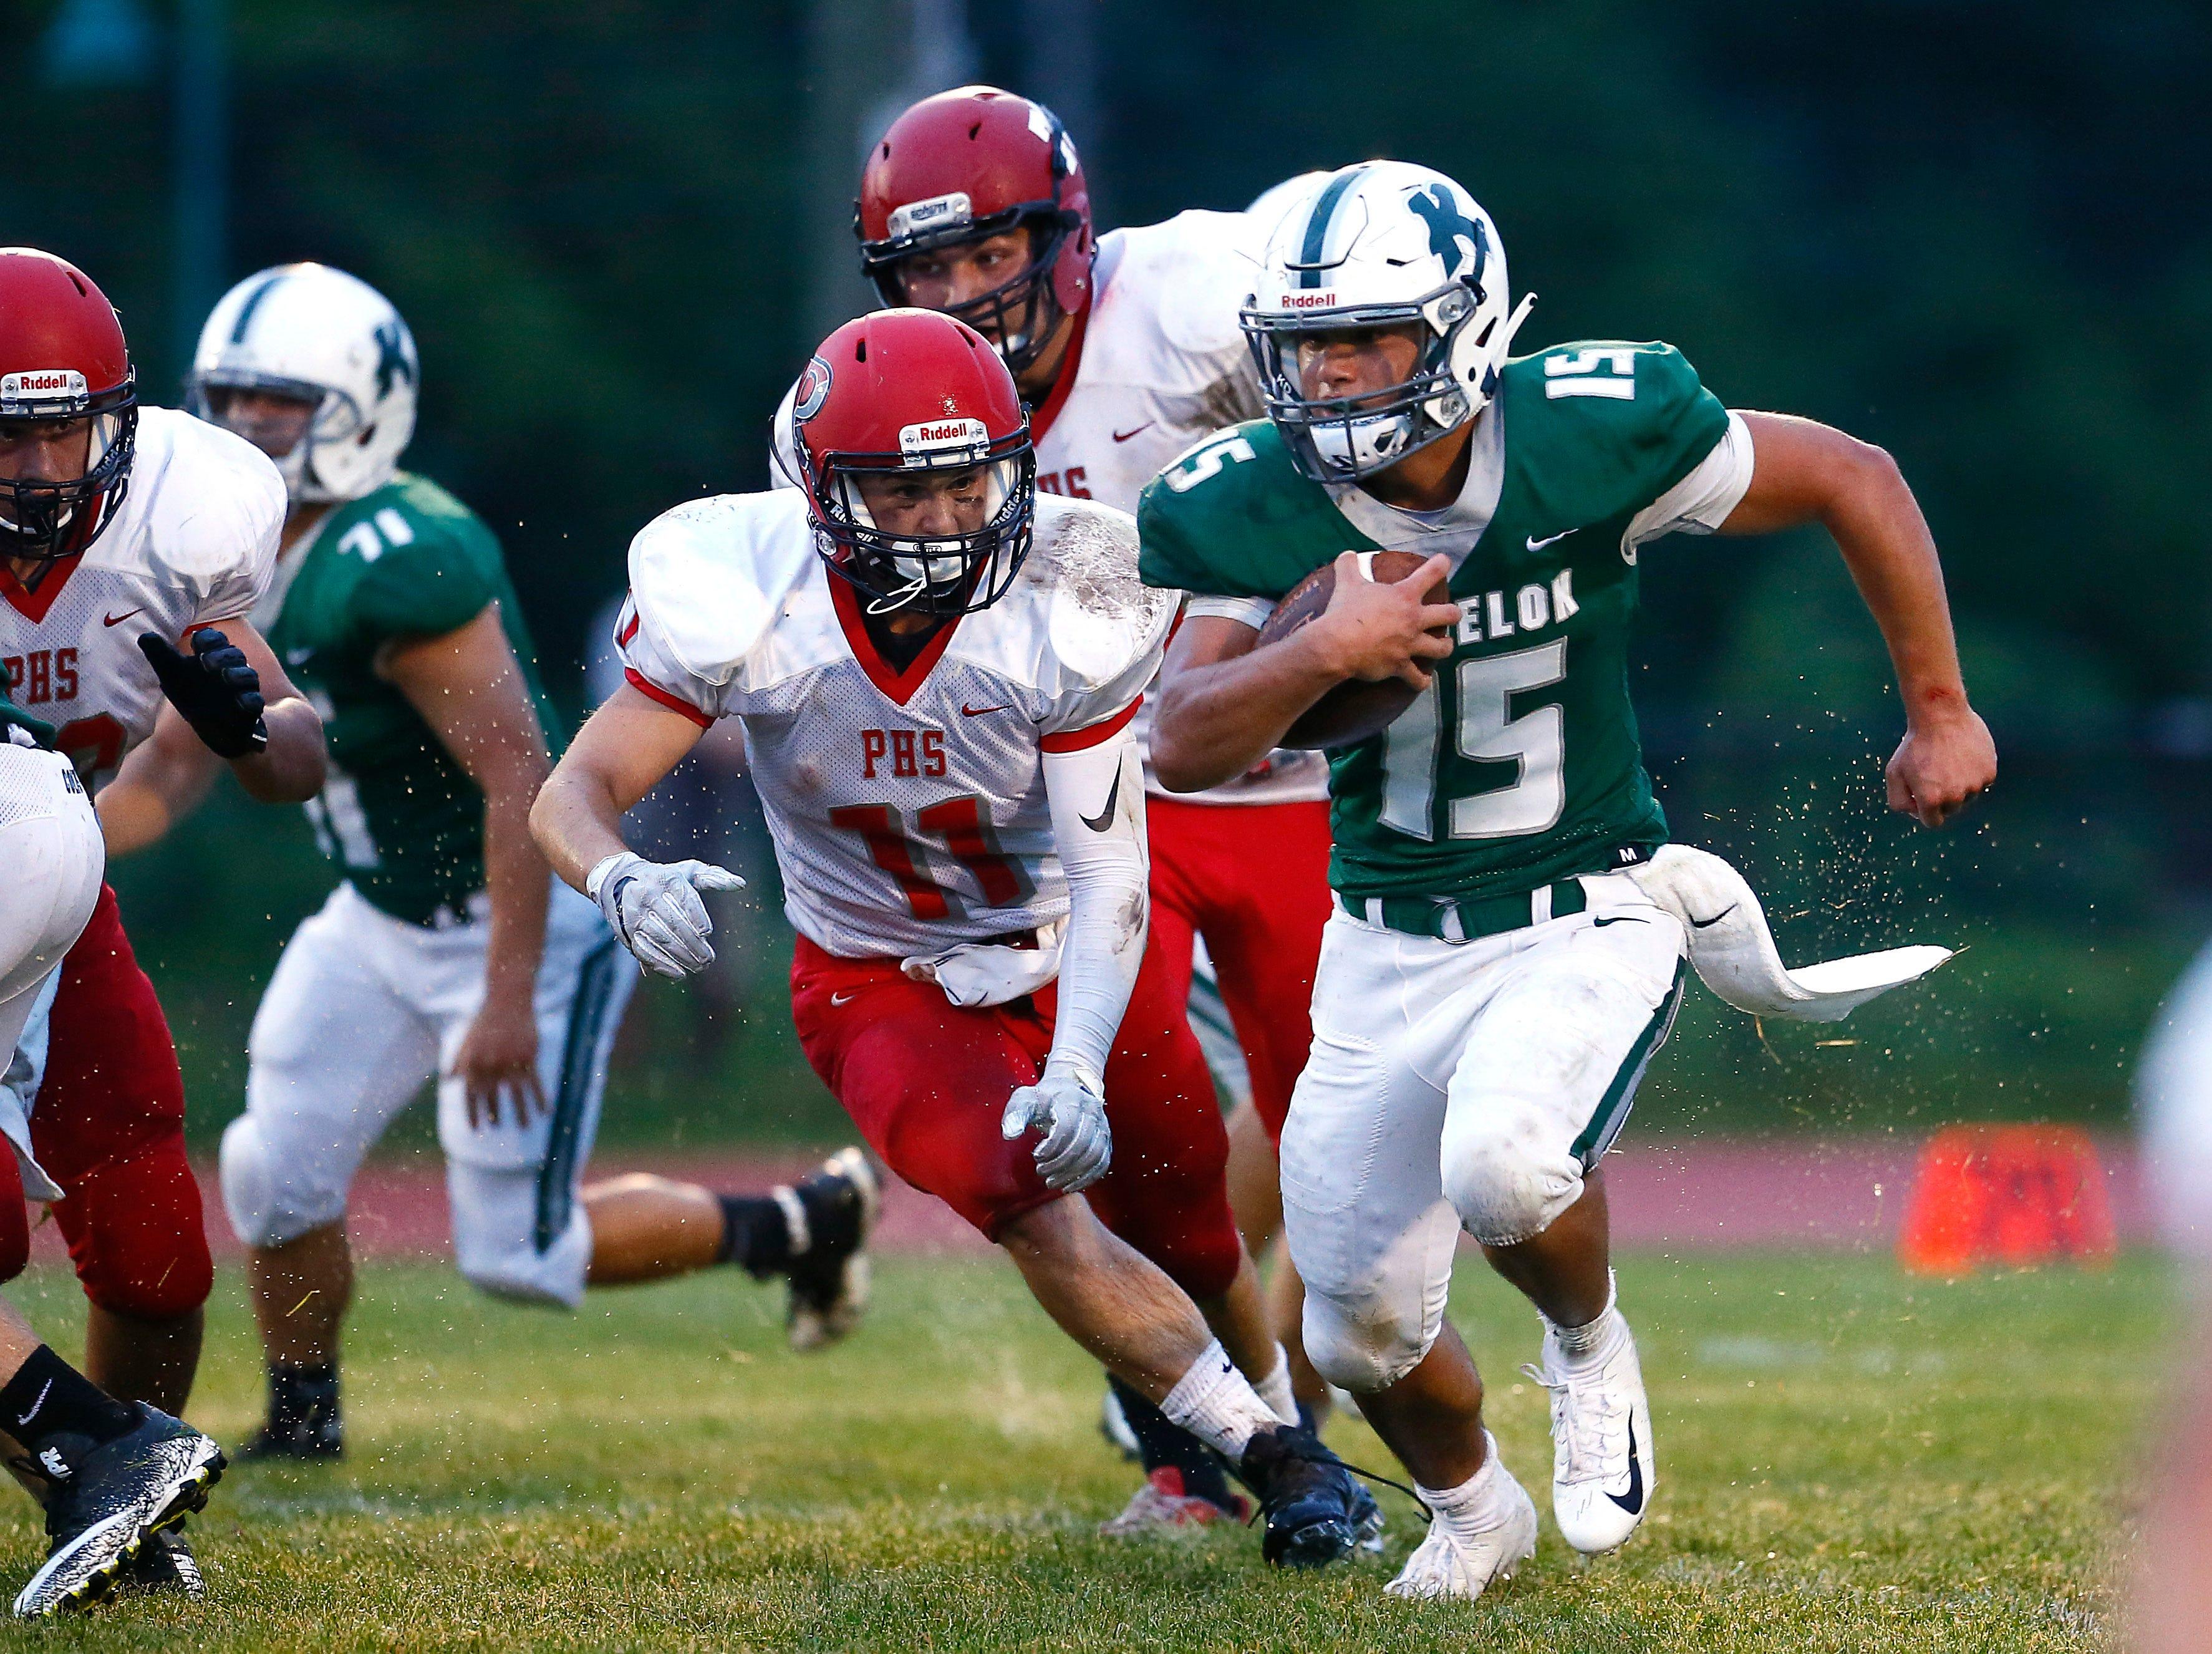 Kinnelon quarterback Joe Rymarz picks up a first down vs. Parsippany during their SFC American Blue football season opener. August 31, 2018, Kinnelon, NJ